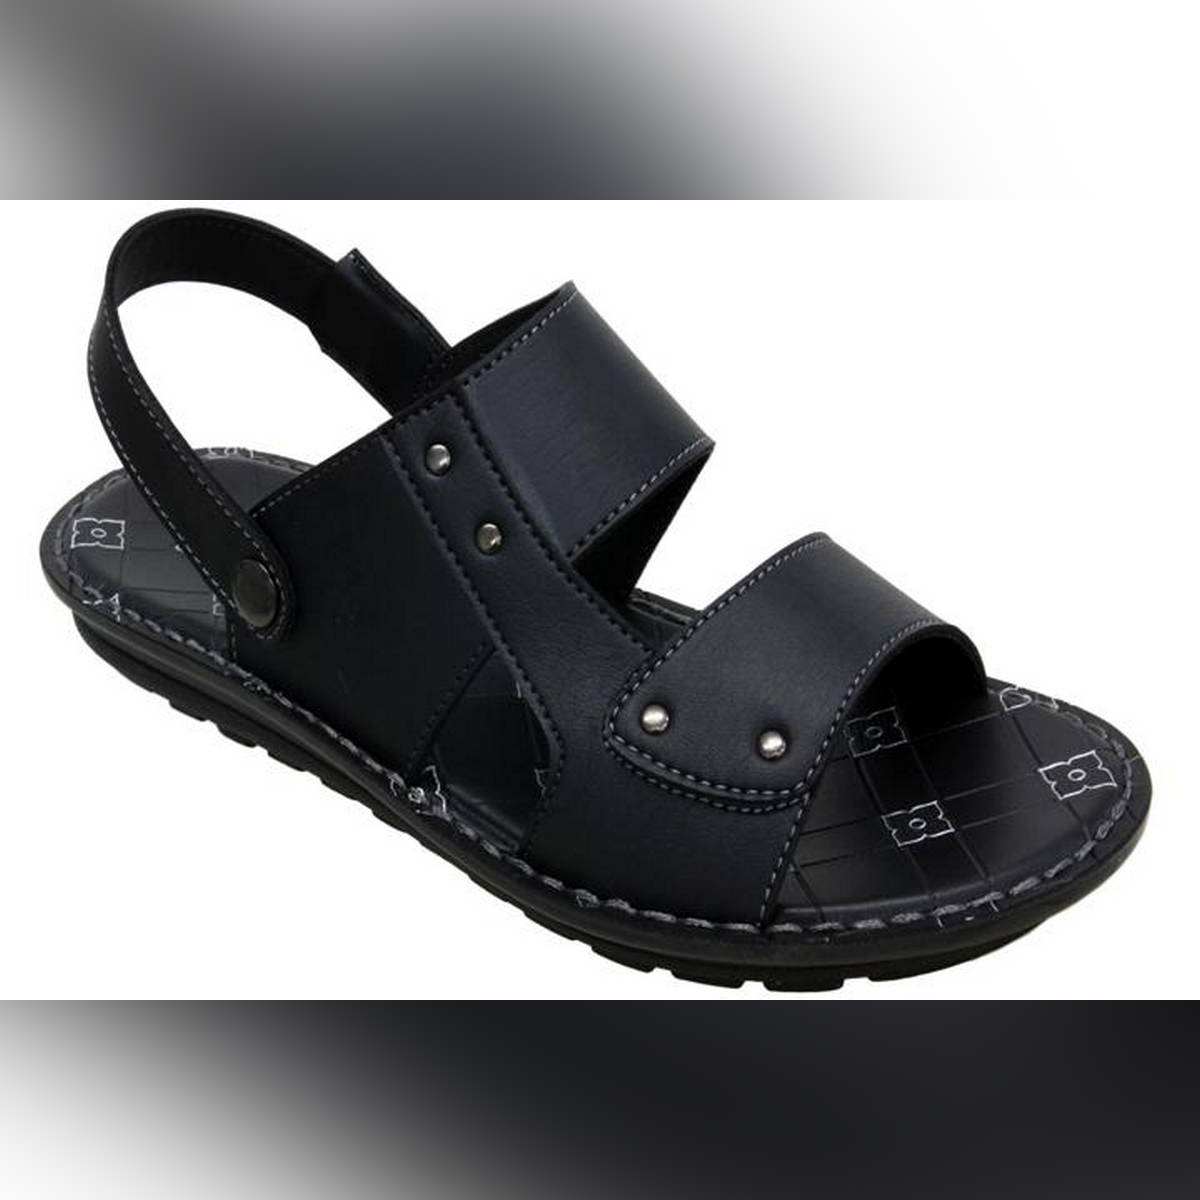 Aerosoft Synthetic Leather Slippers For Men P3906